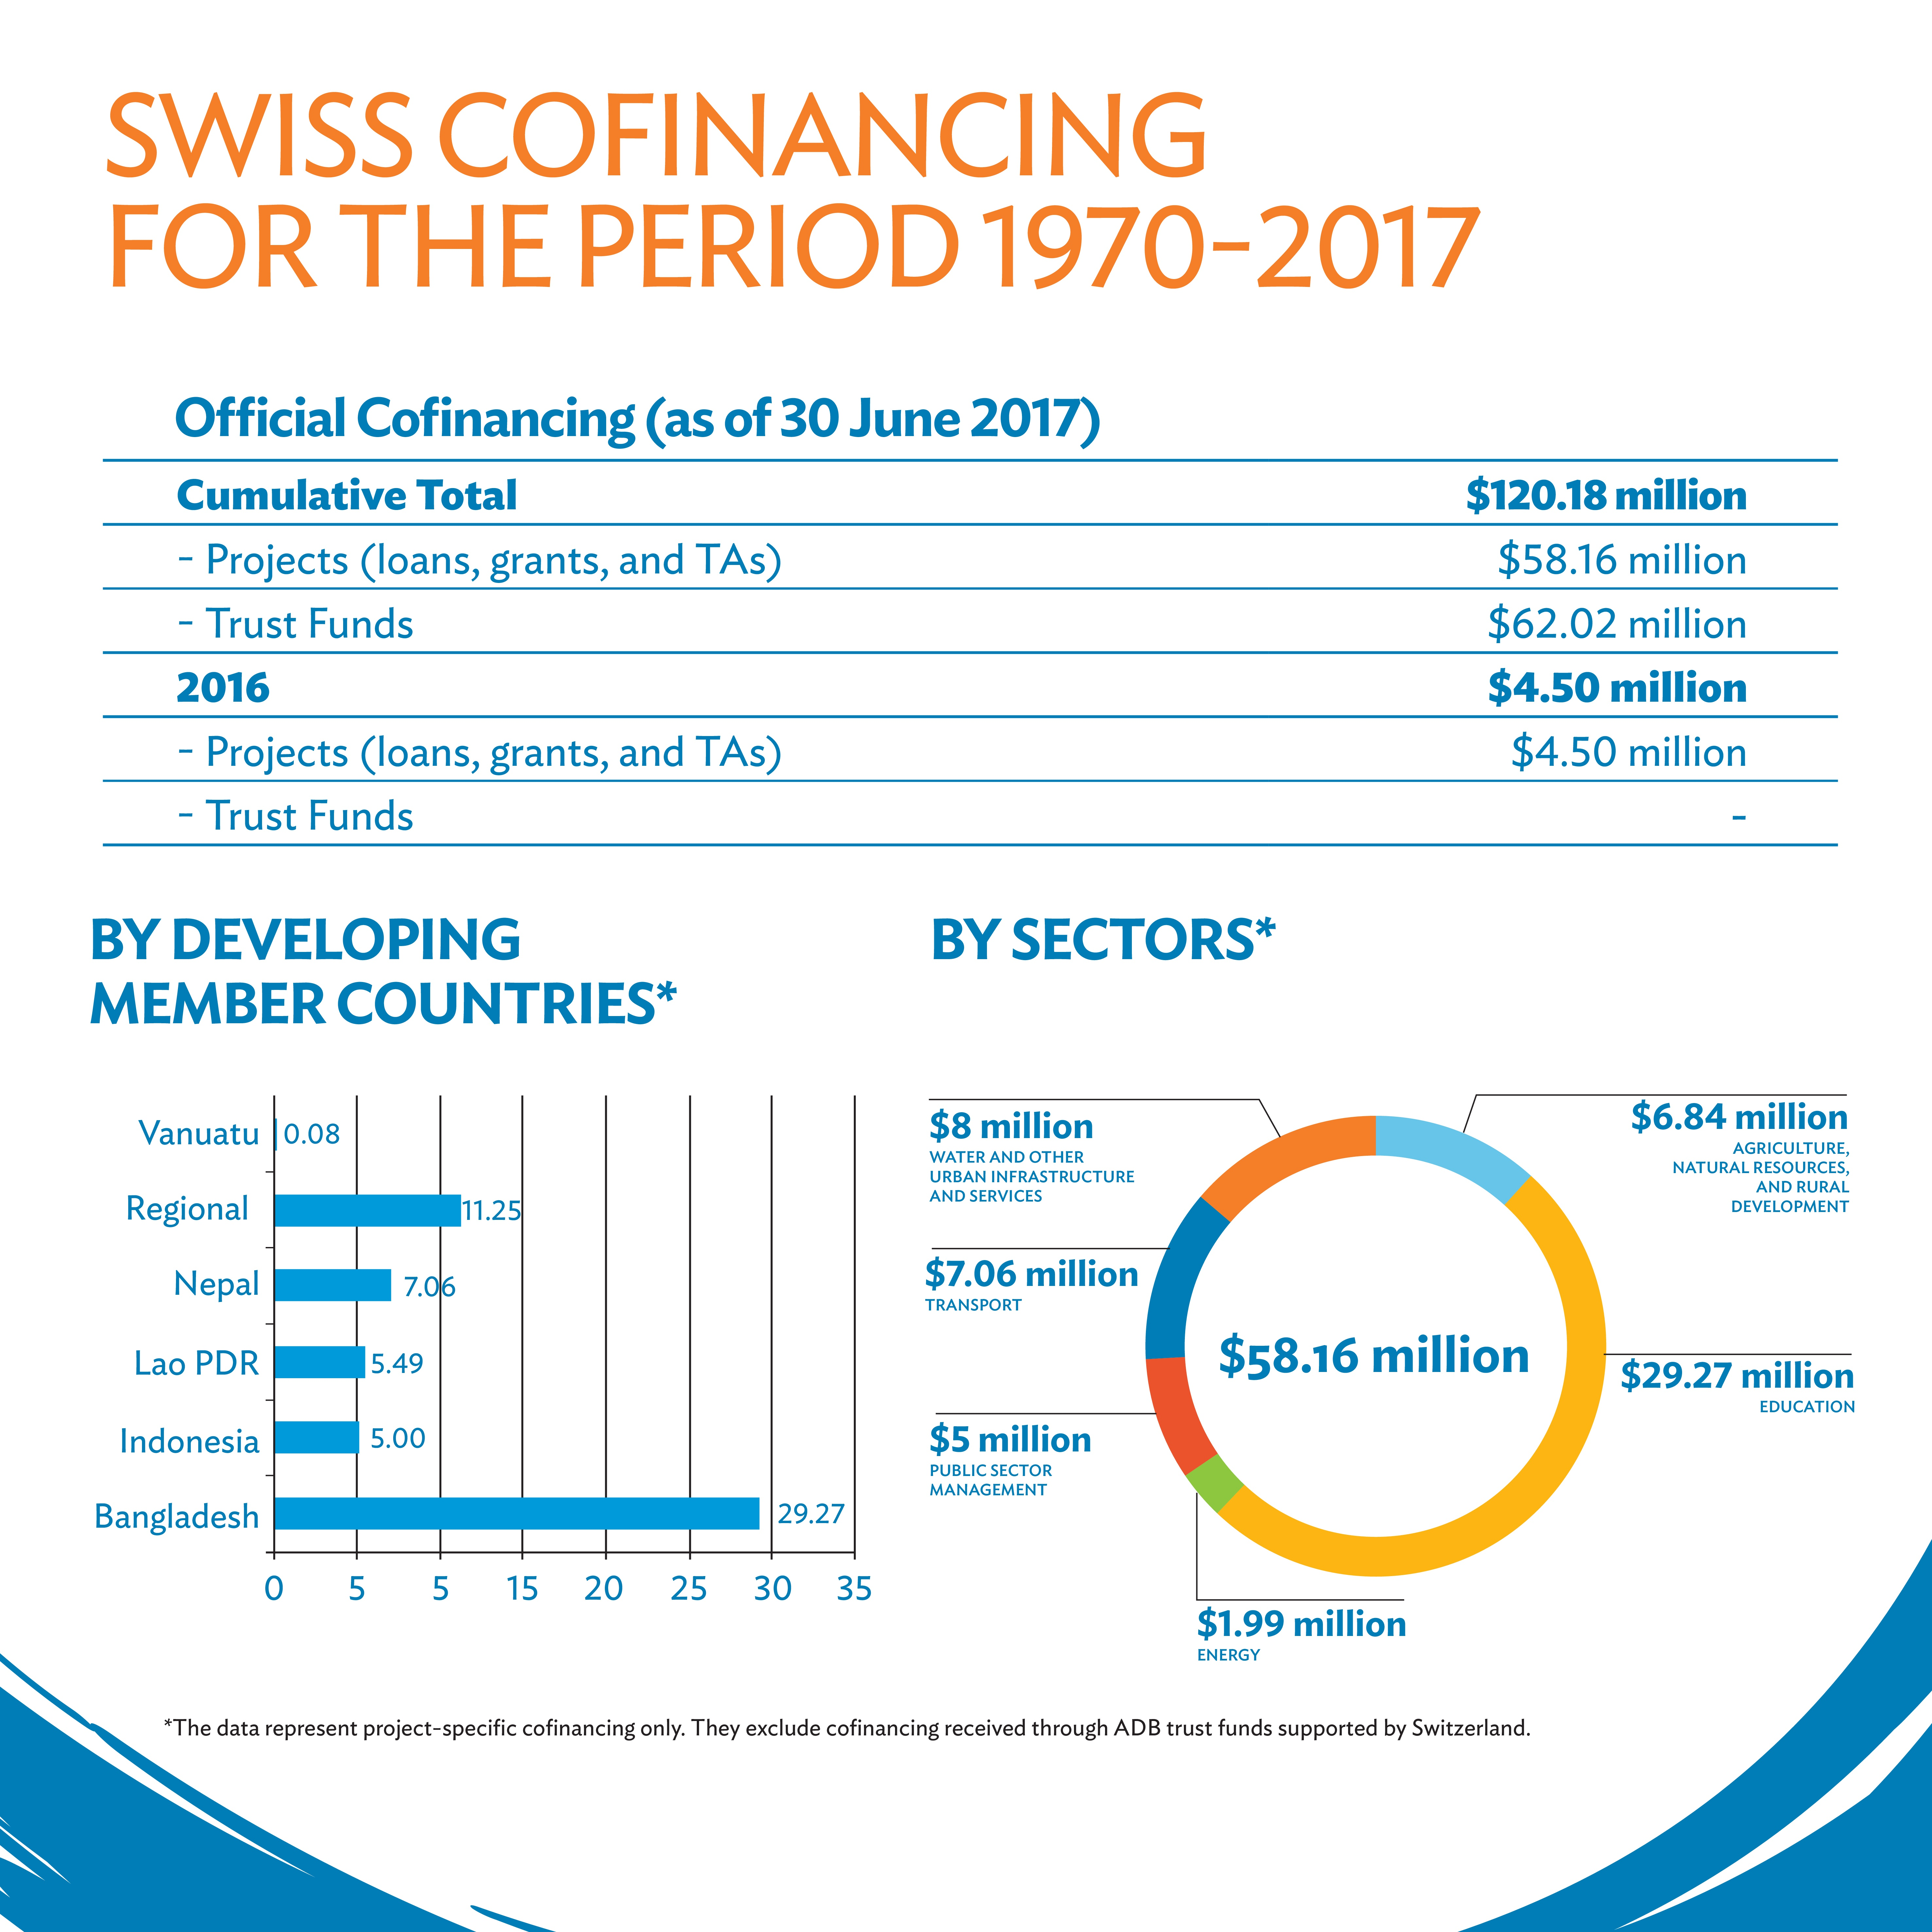 SECO Cooperation│50 Years of Partnership between Switzerland and